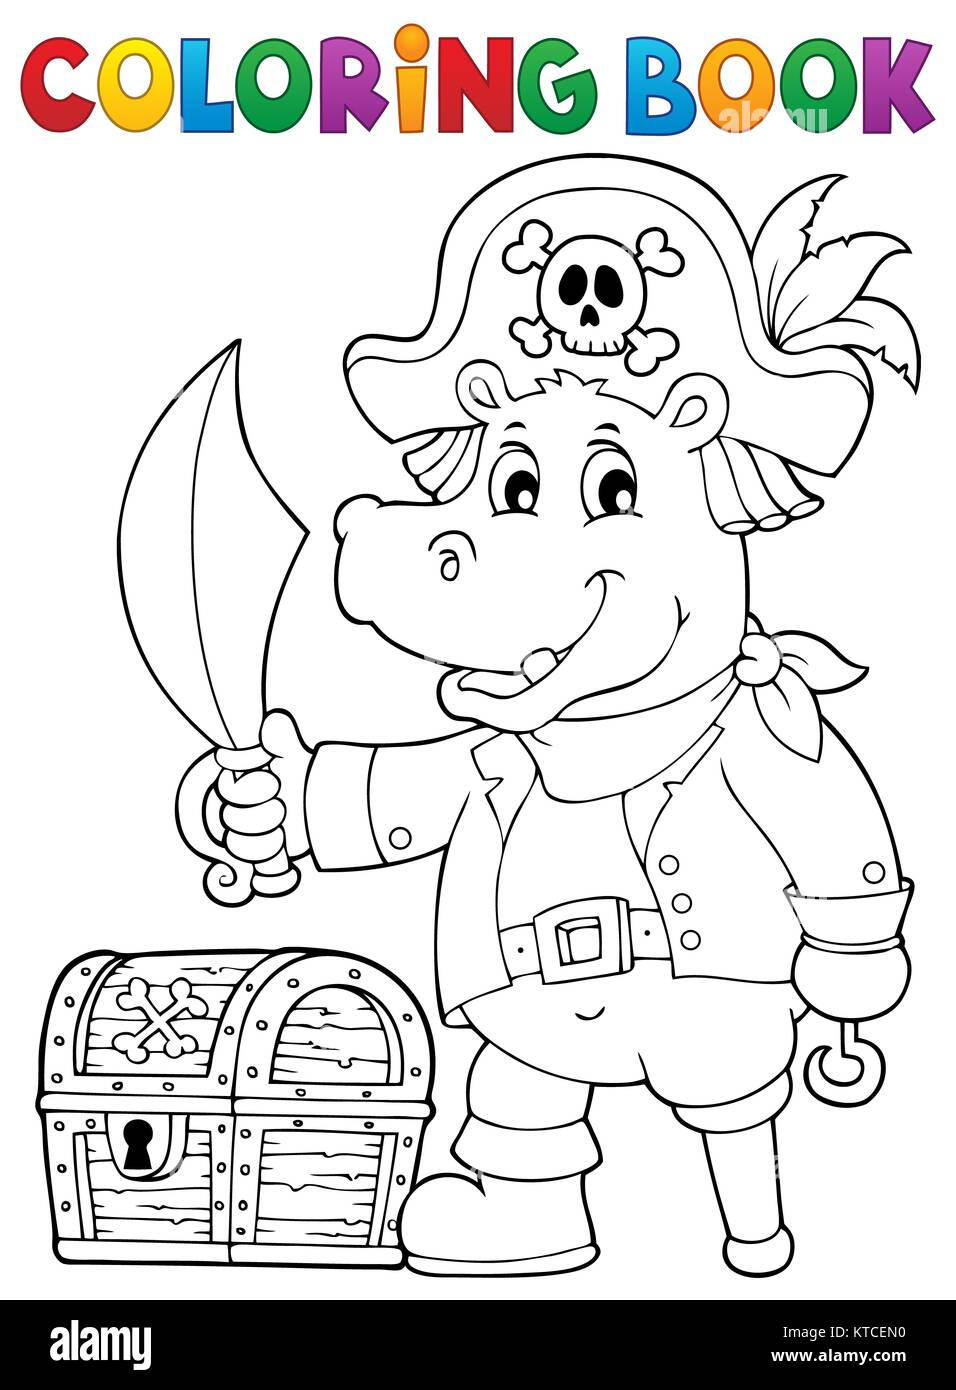 Coloring book pirate hippo image 1 - Stock Image